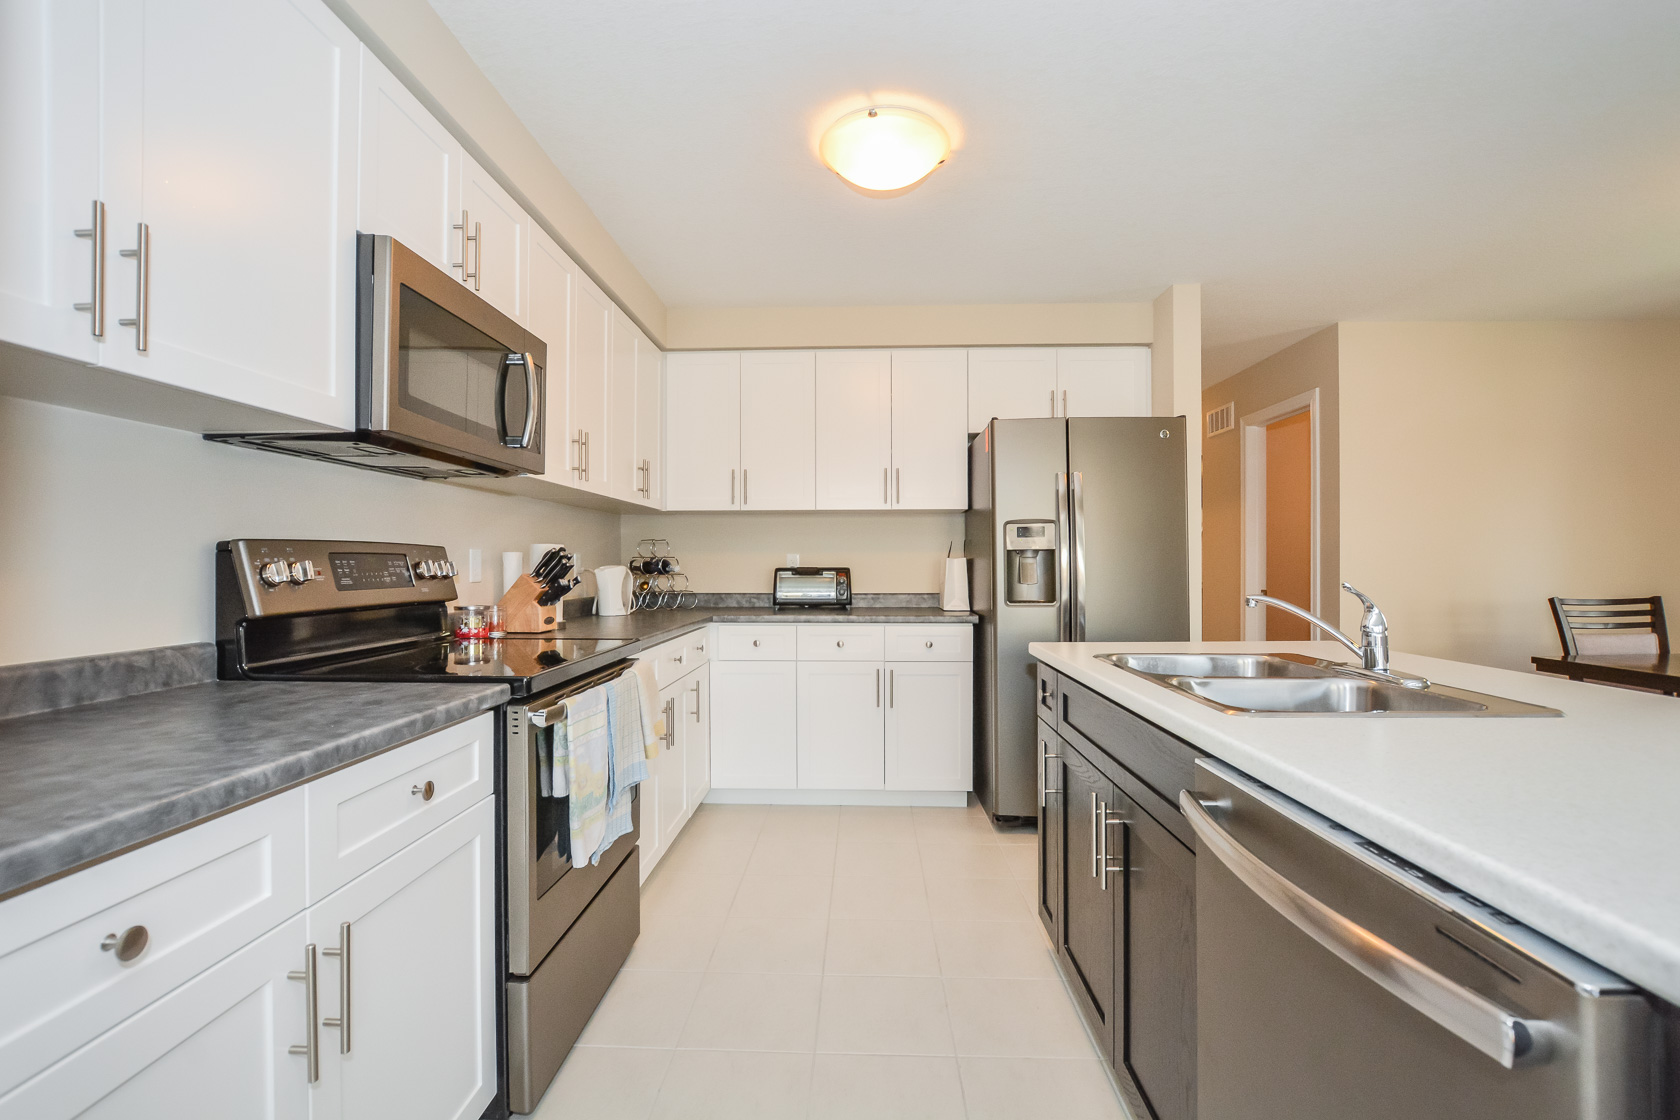 Home for rent in Guelph